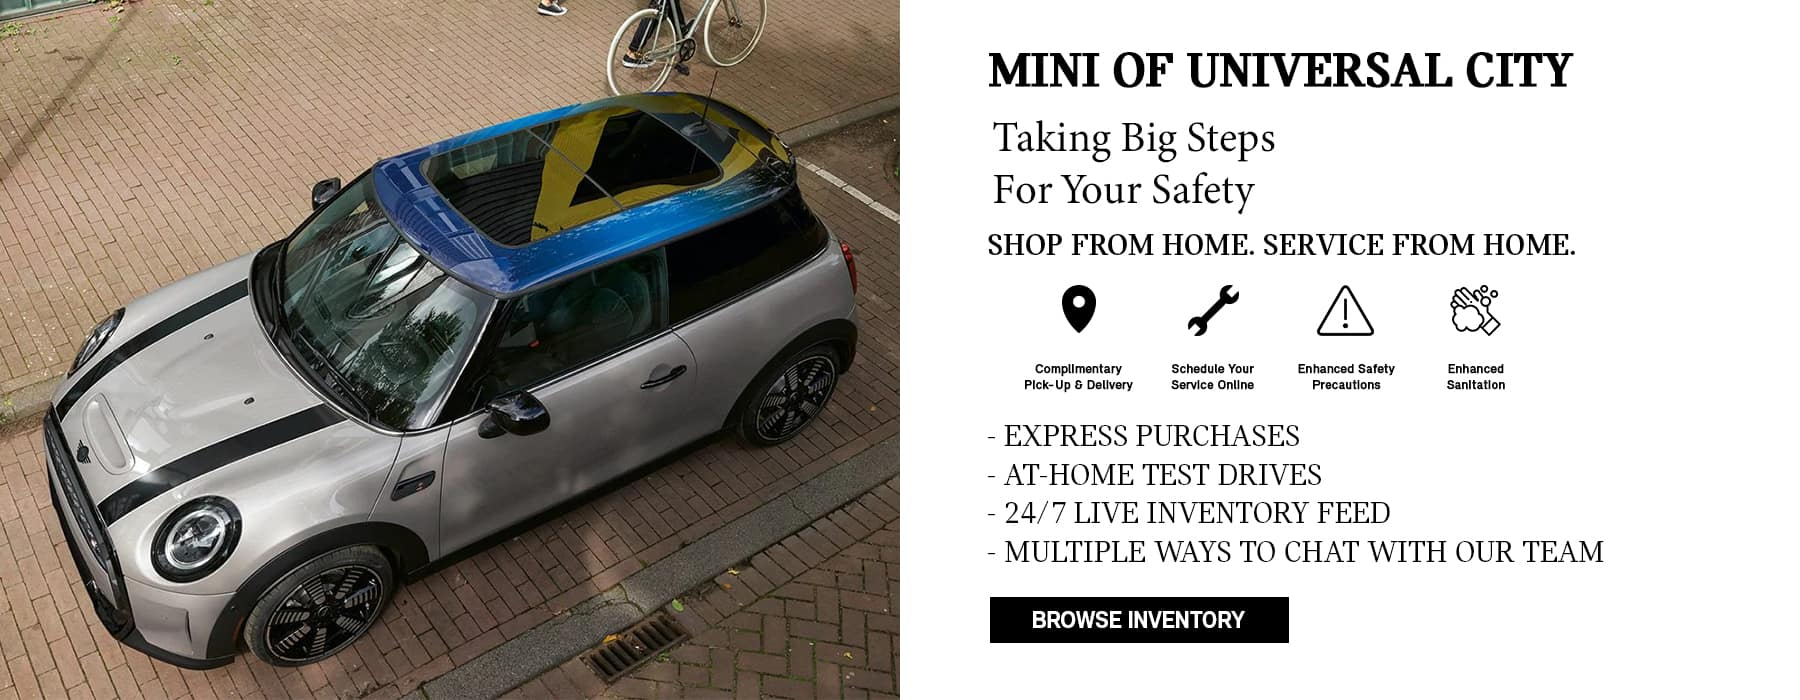 MINI Of Universal City Shop from home